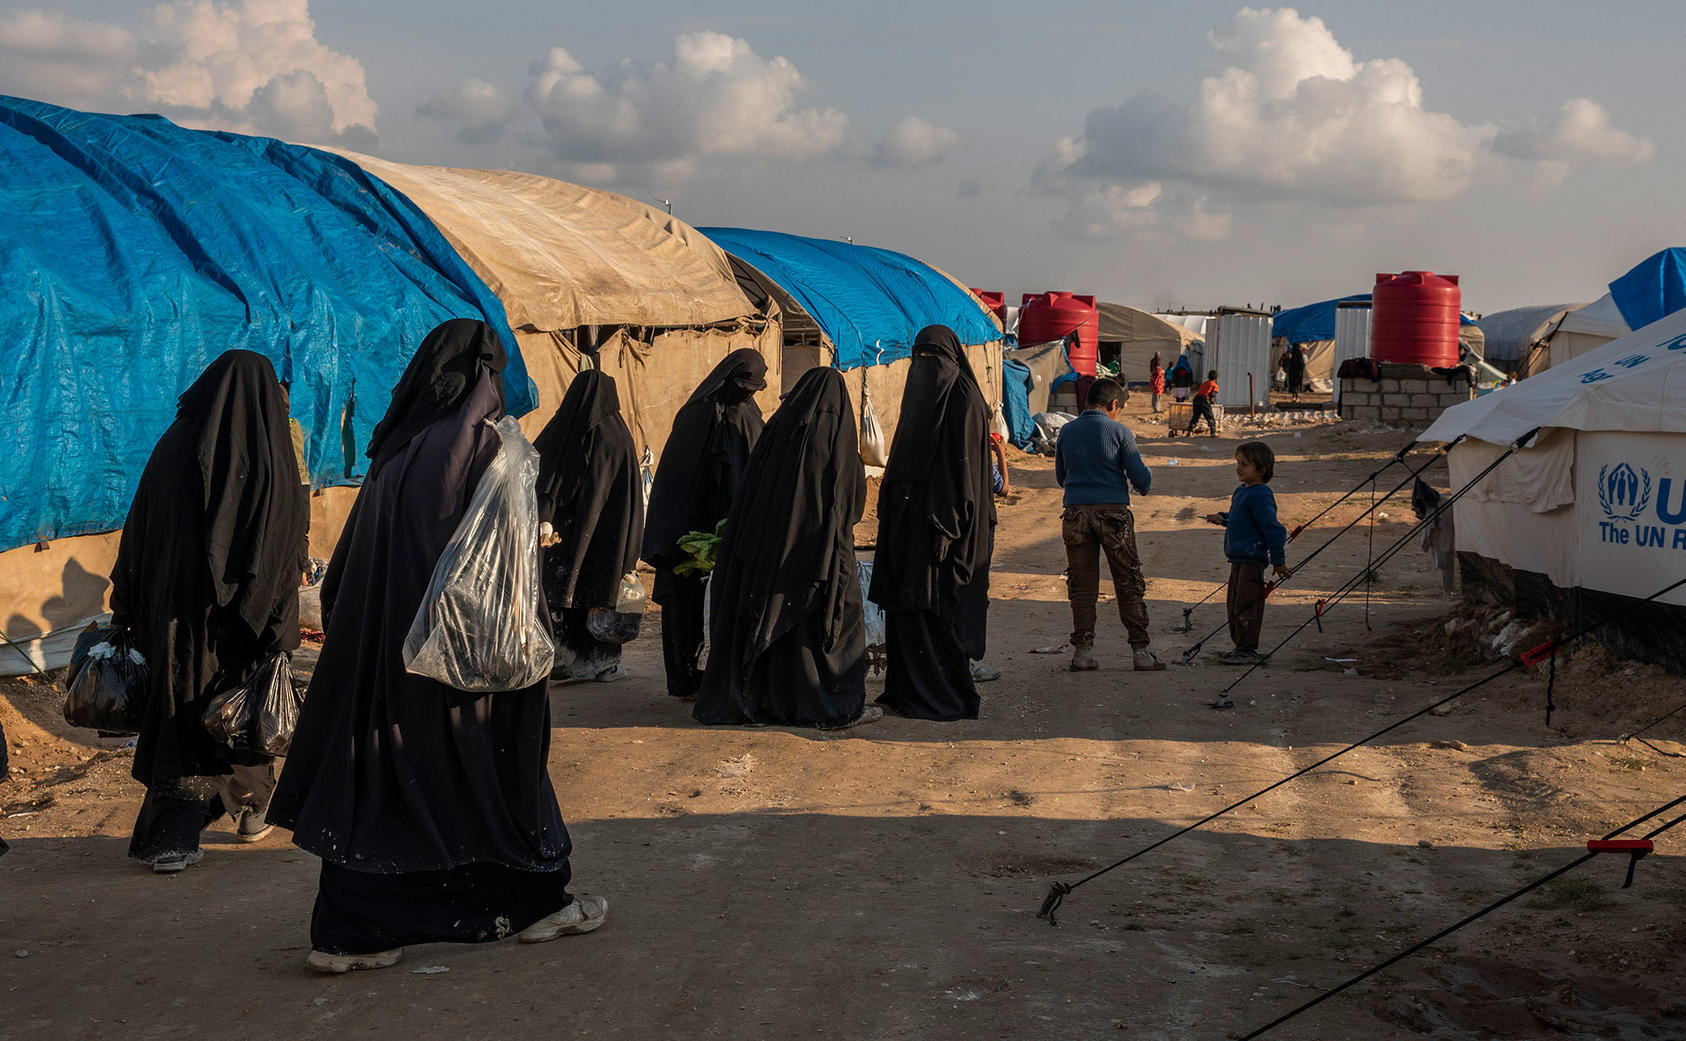 Kurdish-controlled al-Hol camp in northern Syria, March 28, 2019. (Ivor Prickett/The New York Times)